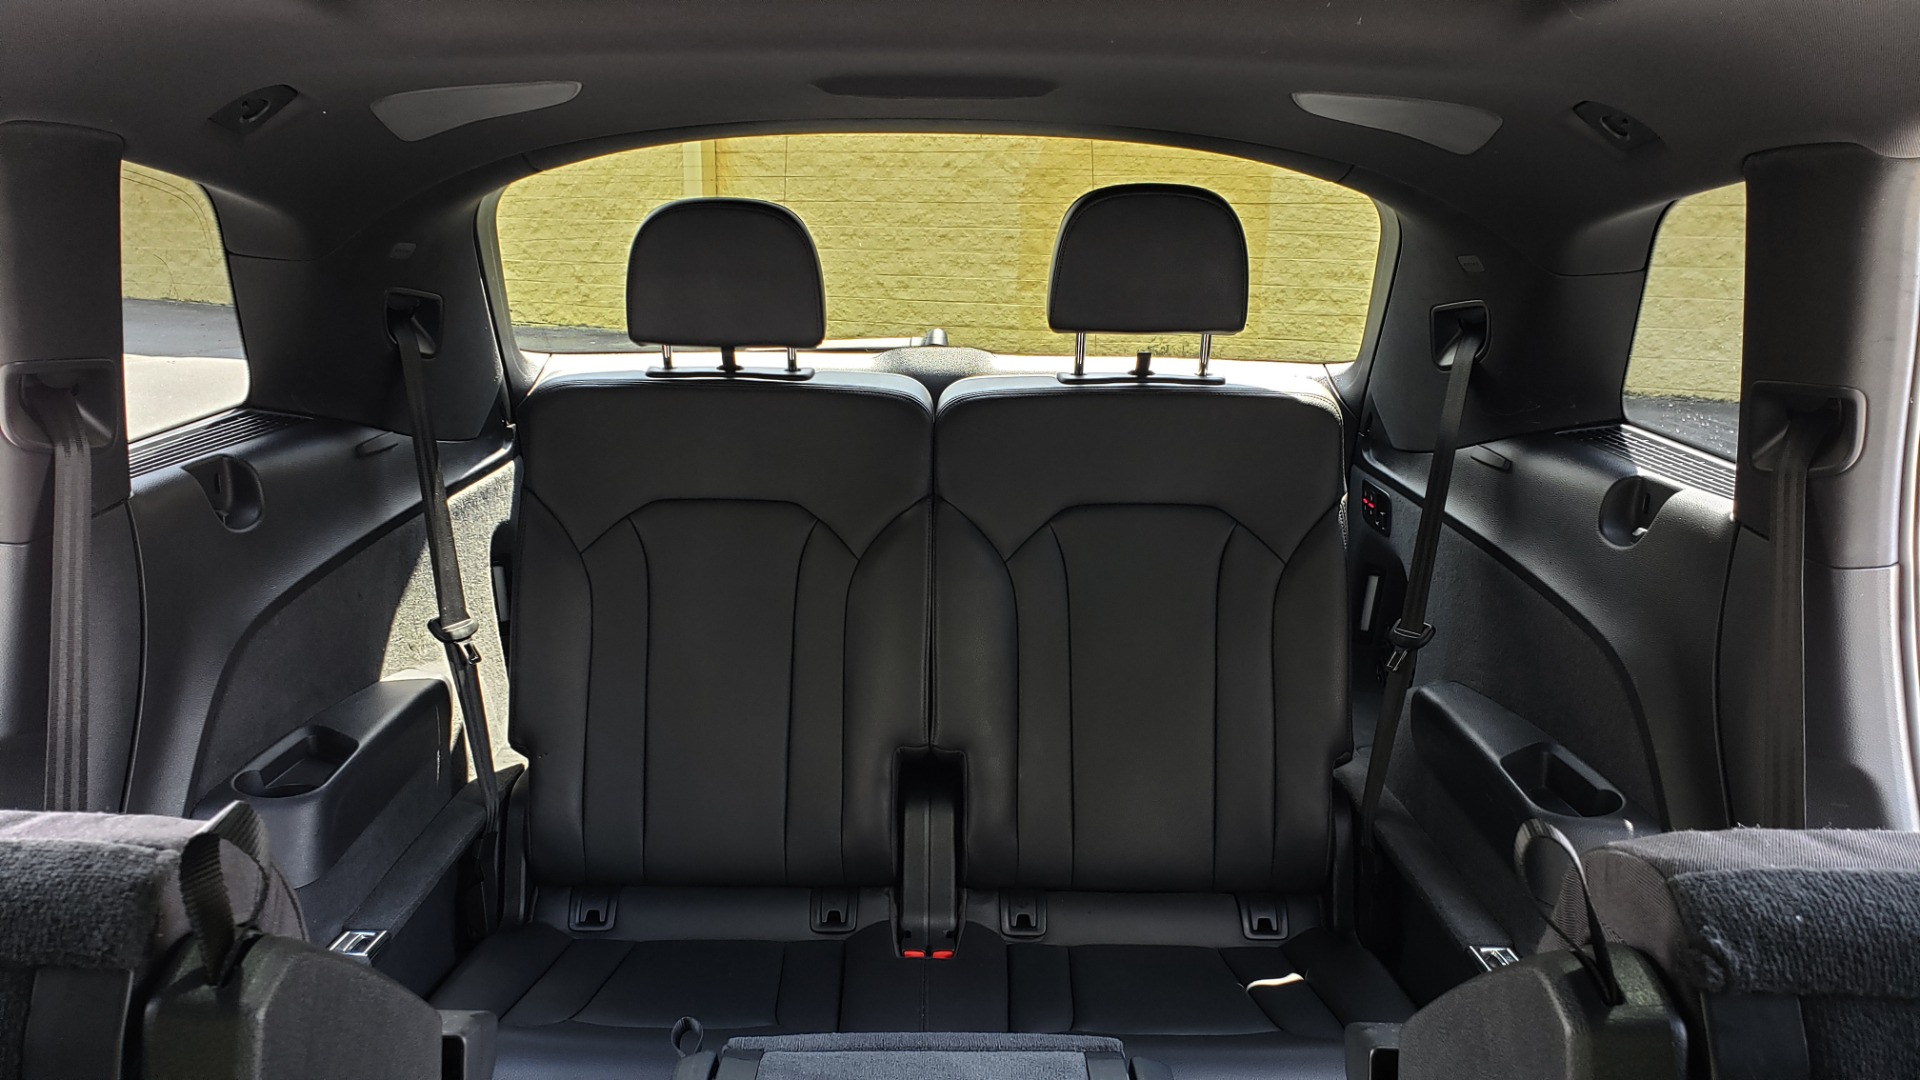 Used 2017 Audi Q7 PREMIUM PLUS / VISION PKG / NAV / PANO-ROOF / 3-ROW / REARVIEW for sale Sold at Formula Imports in Charlotte NC 28227 69